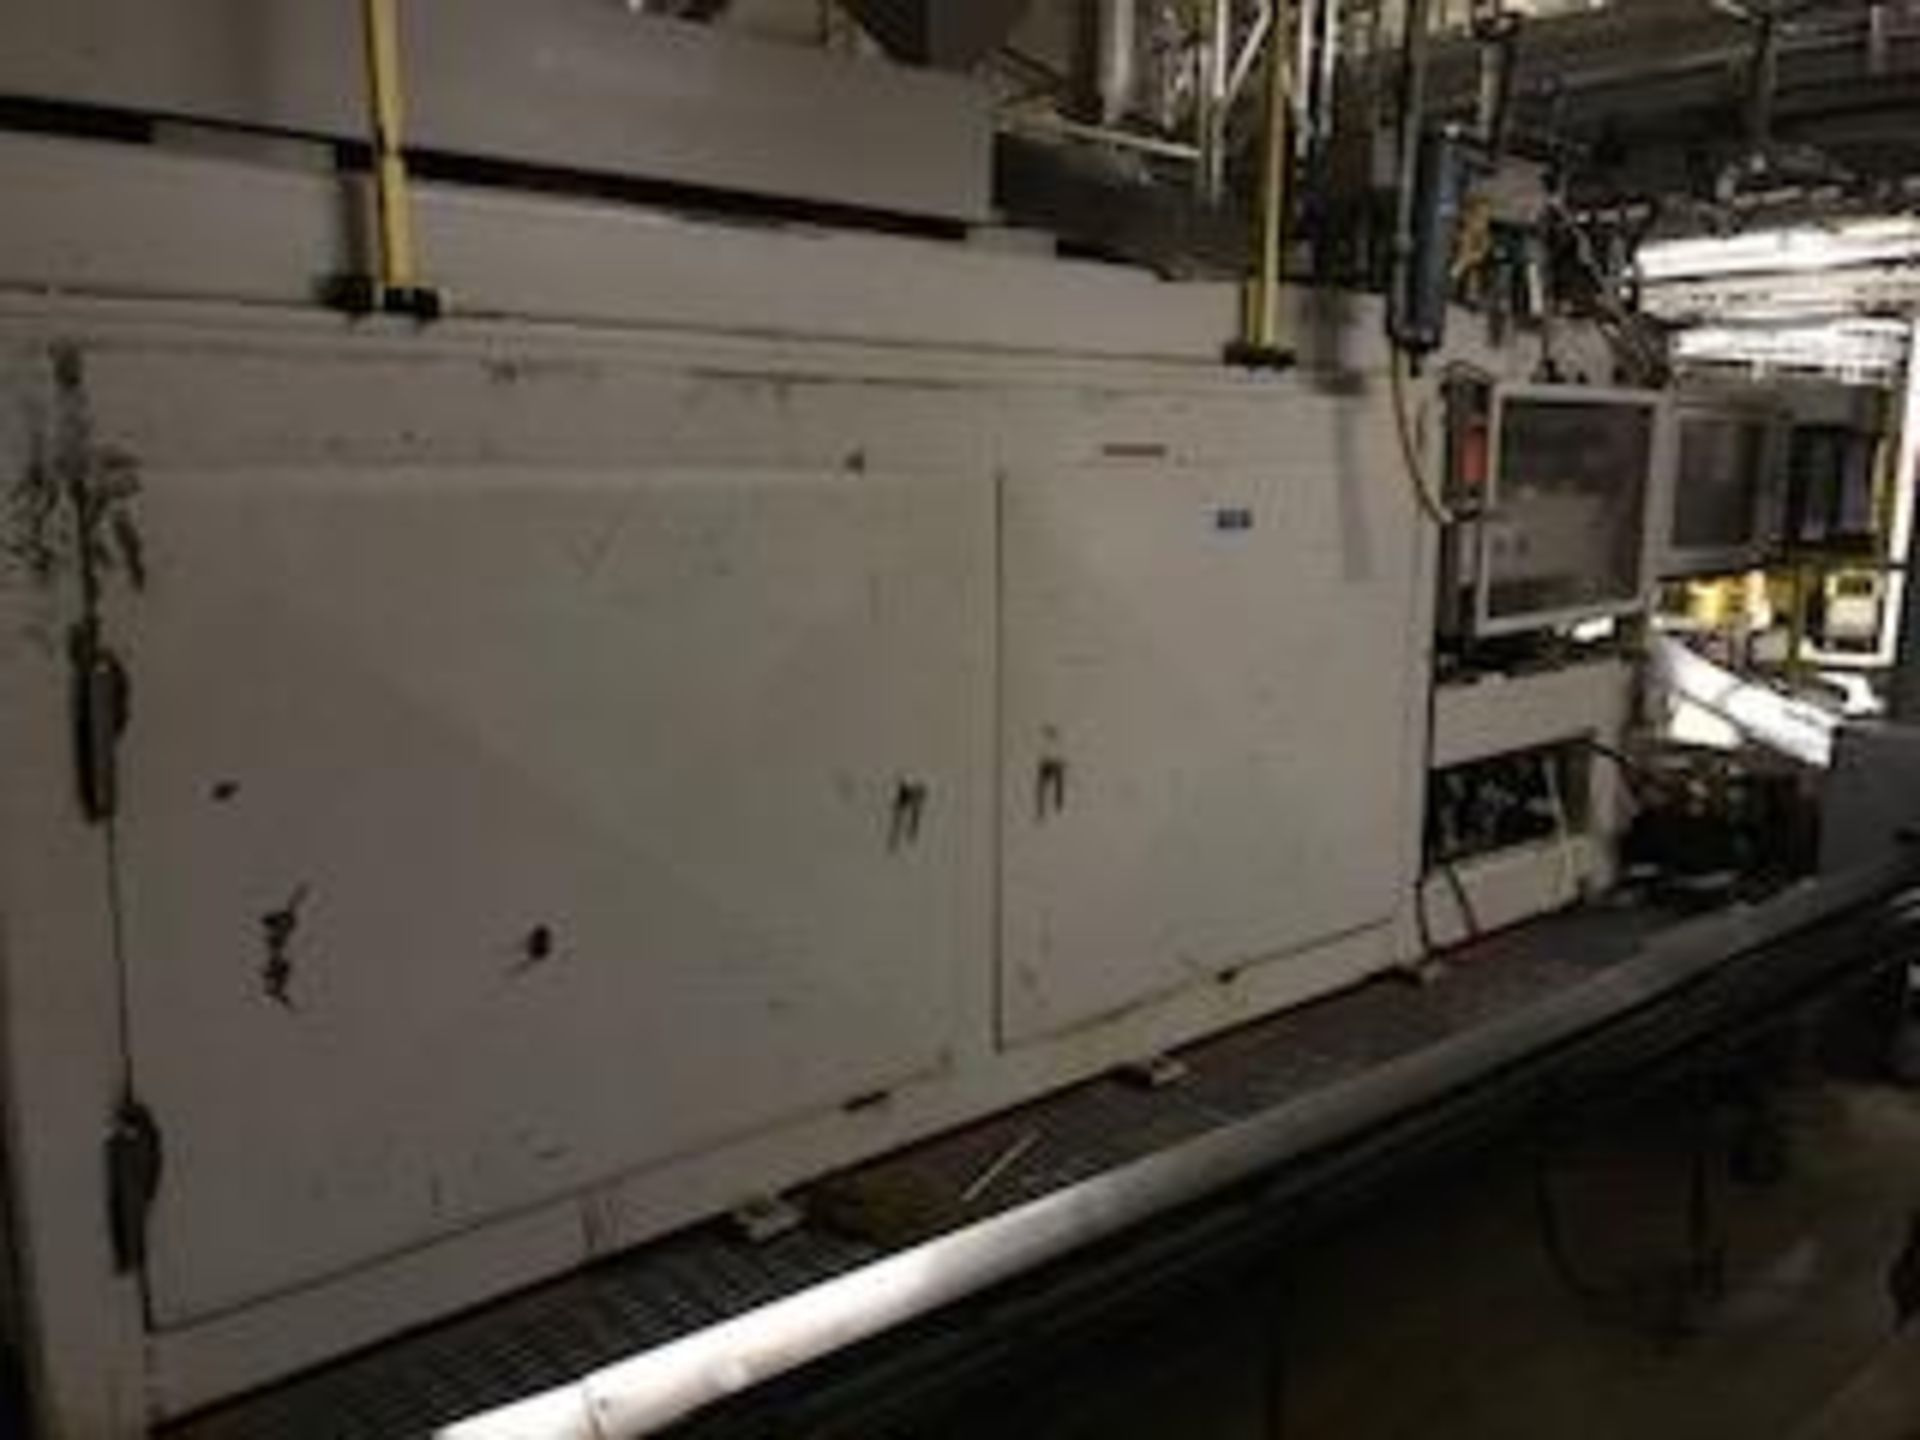 Uniloy Milacron 12-Head Blow Molding Machine Model RS13500, S/N 89105 | Rig Fee: $14500 - Image 4 of 5